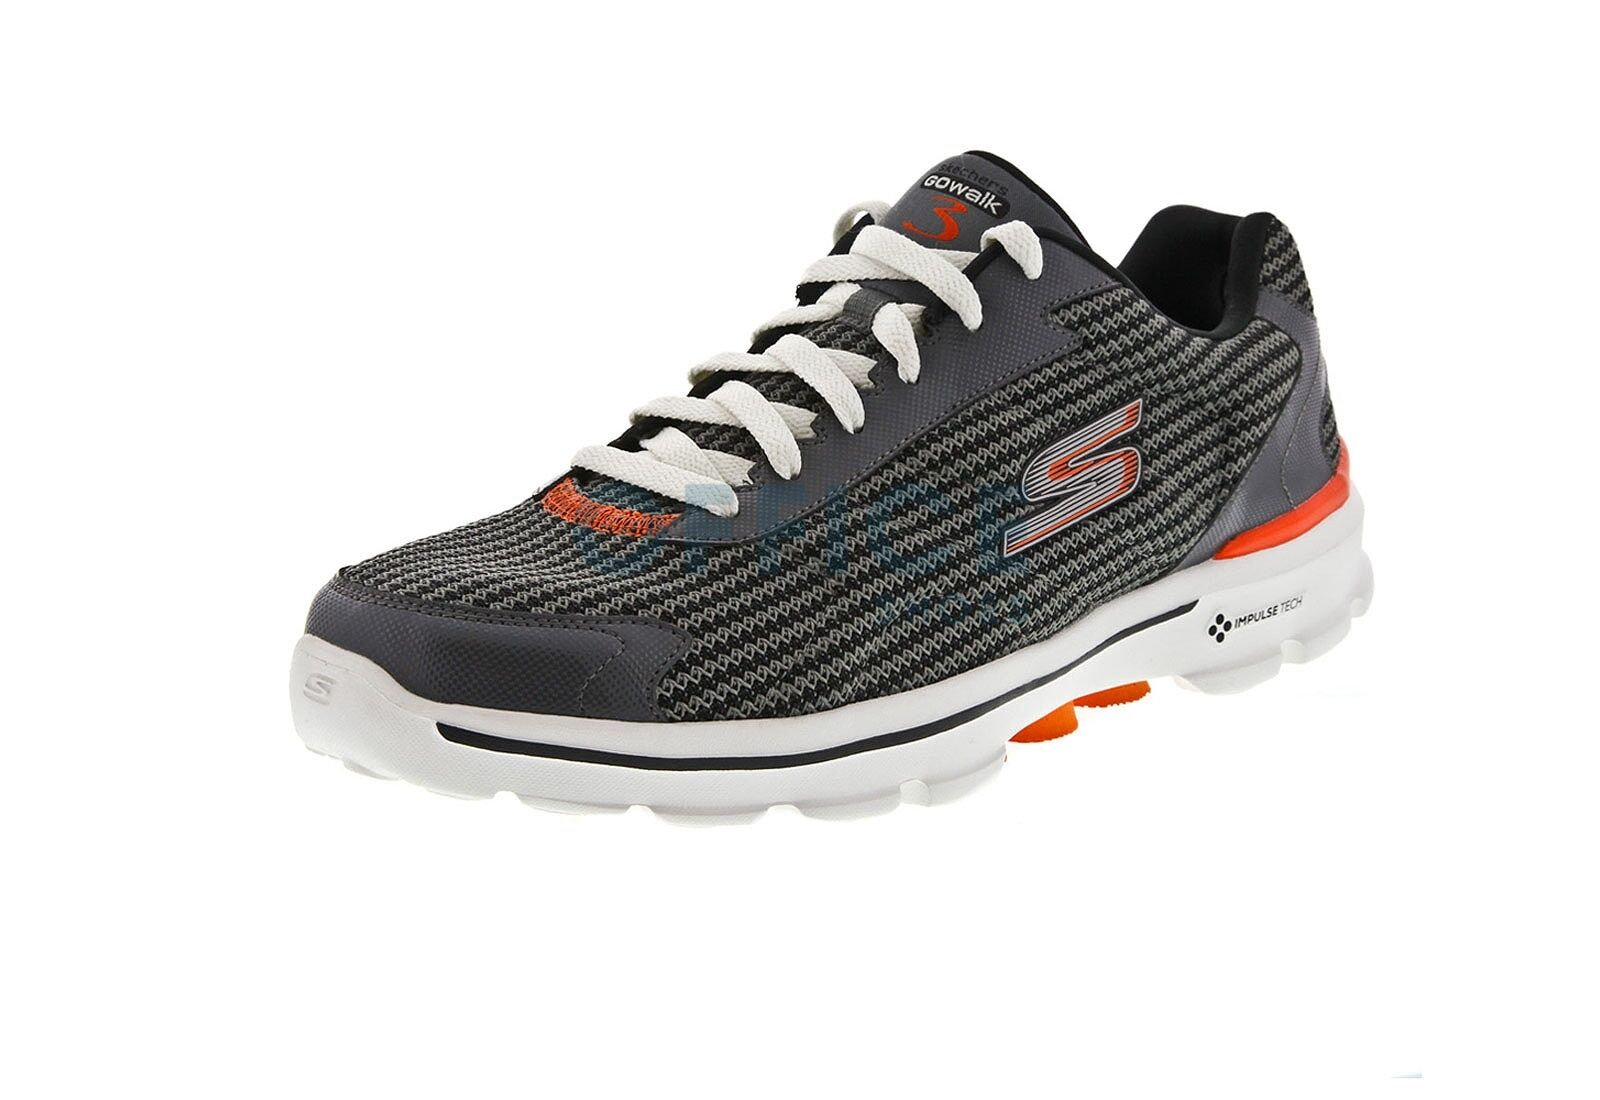 SKECHERS Mens Performance GO WALK 3 FIT KNIT Charcoal Orange Size 8.5 D